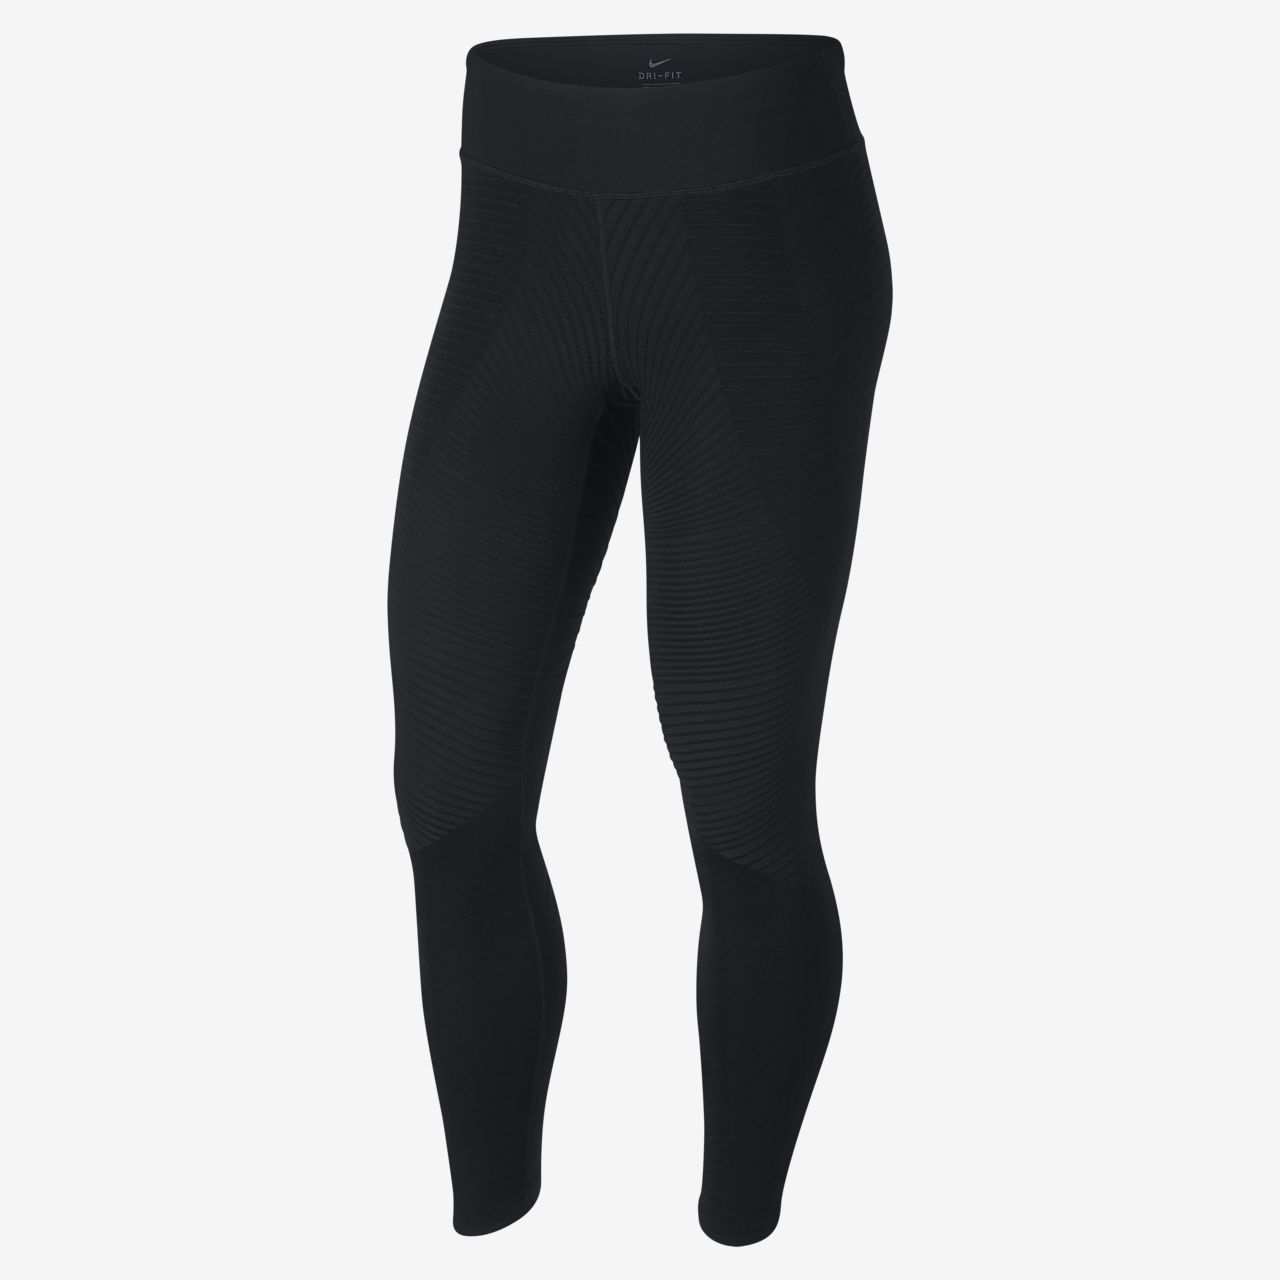 Nike Epic Lux Women s Texture Mid-Rise Running Tights. Nike.com CA 79c1c94582